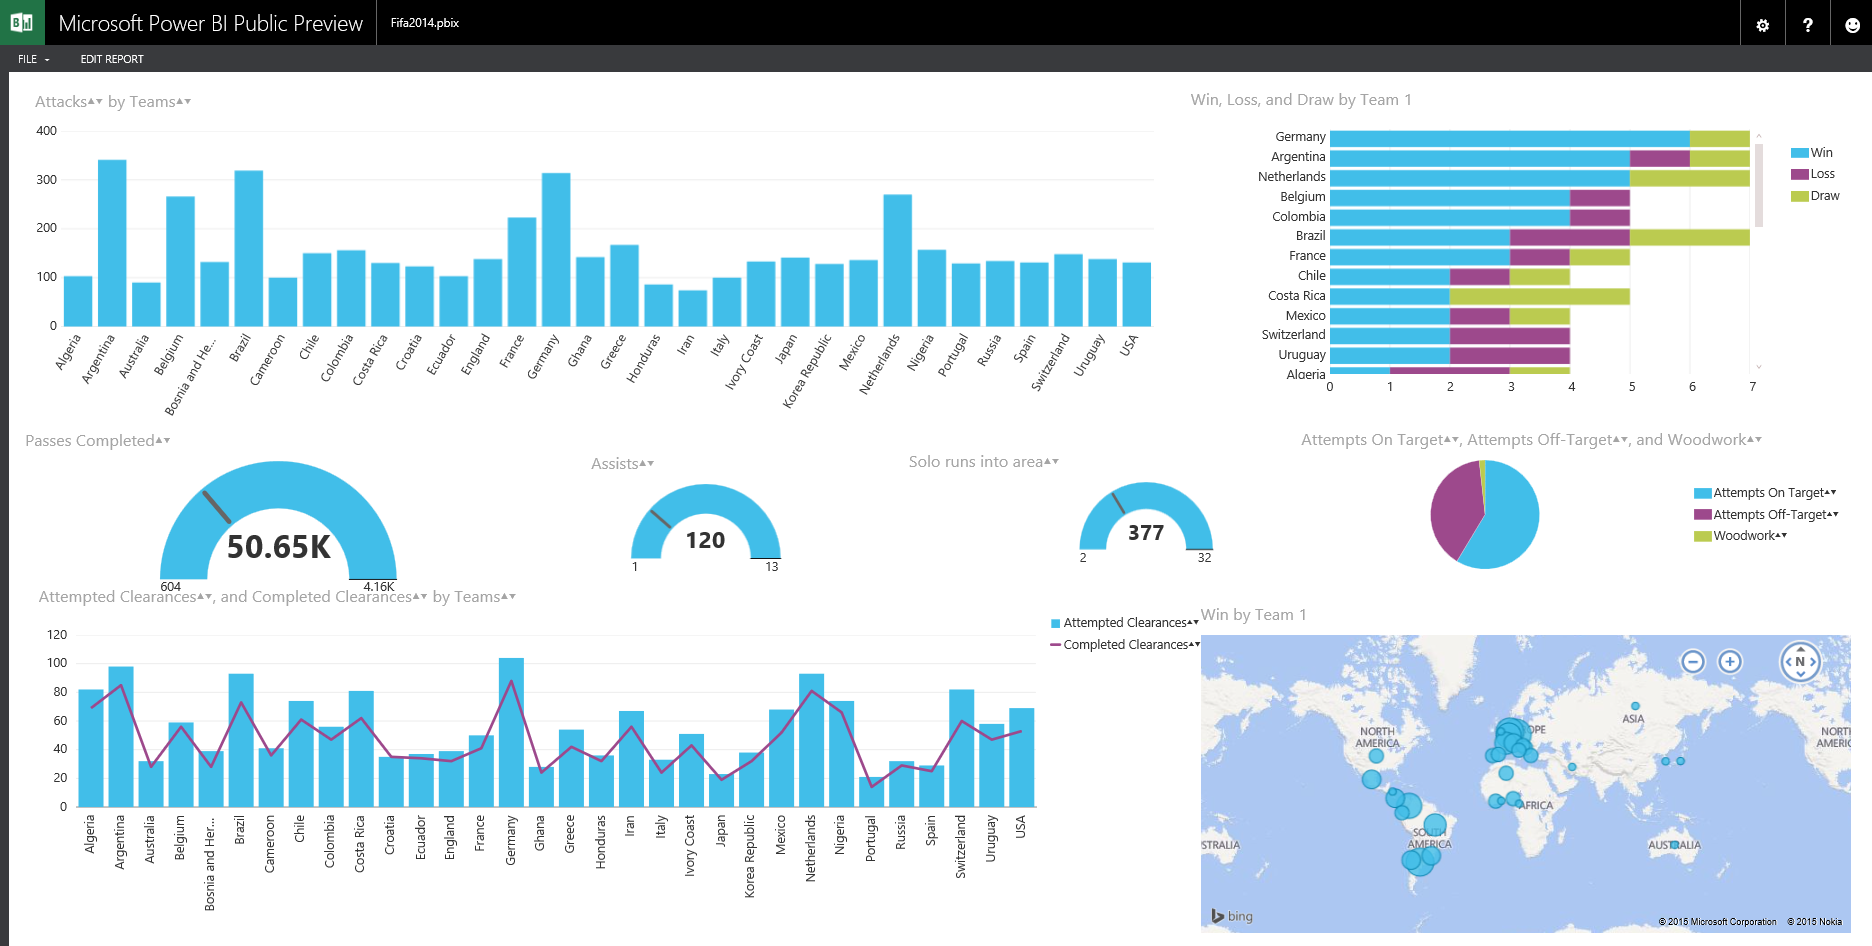 FIFA 2014 World Cup Data Analysis with Power BI – RADACAD